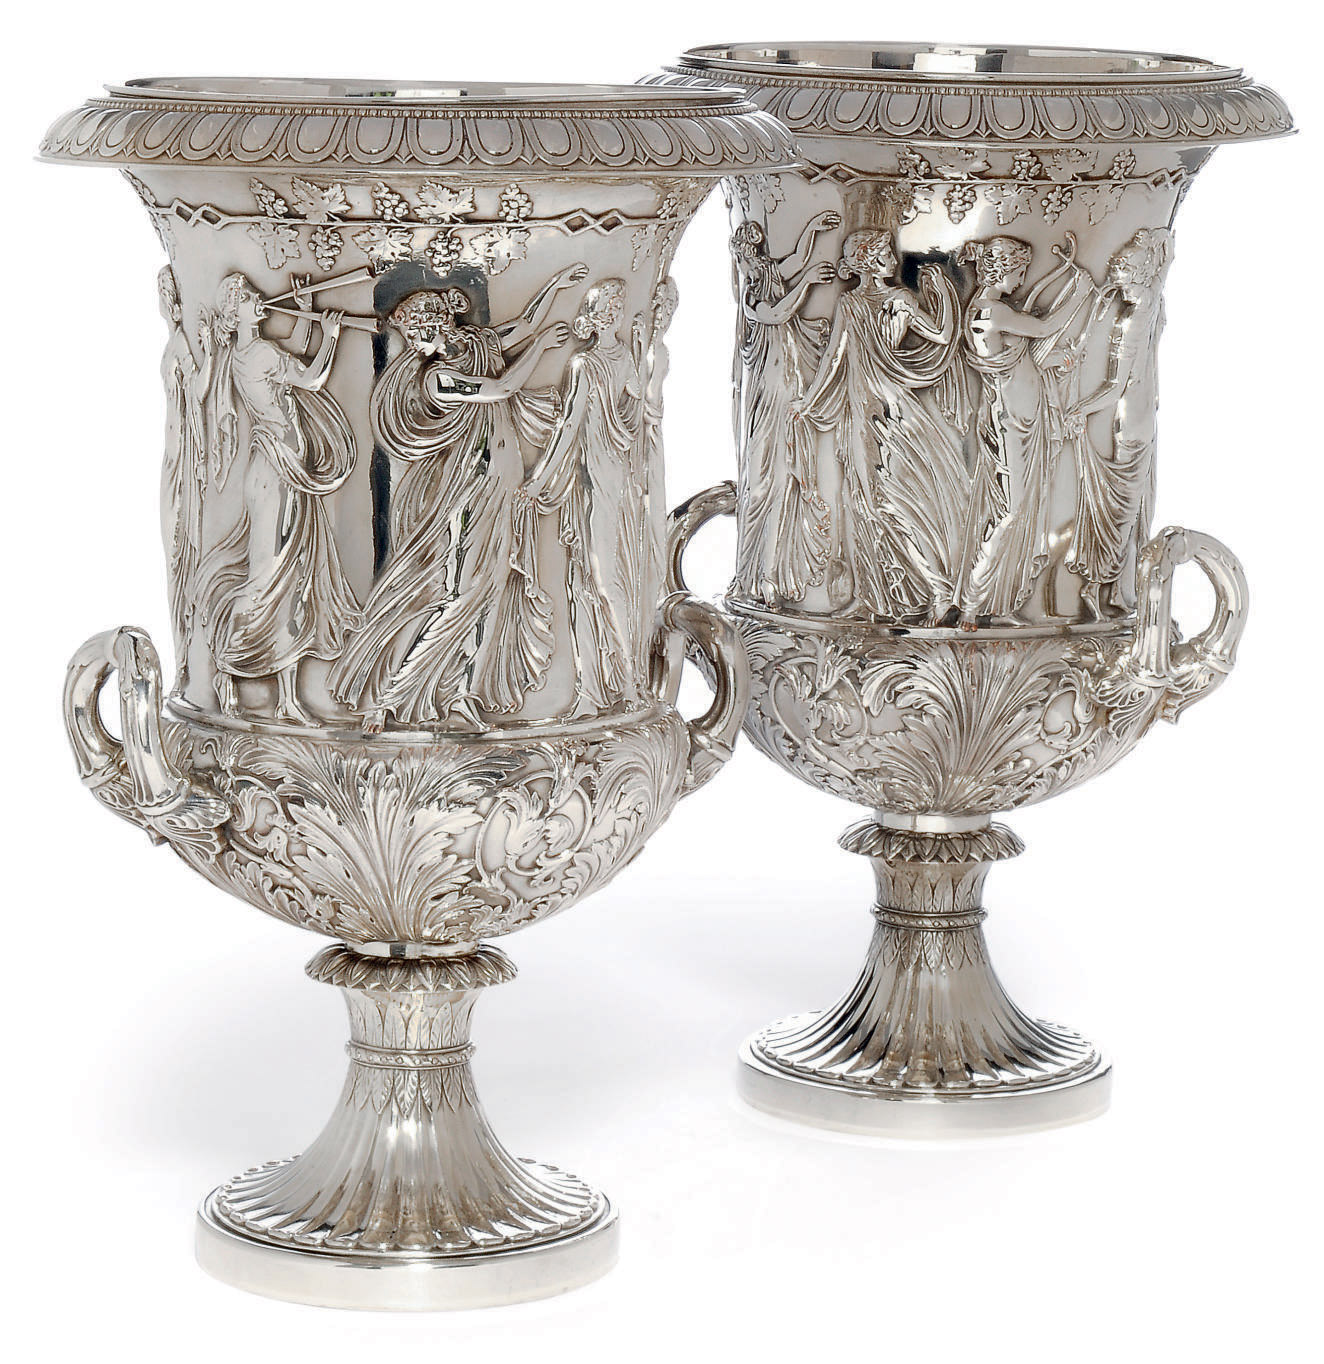 A LARGE AND IMPOSING PAIR OF GERMAN SILVER PLATED ON COPPER WINE COOLERS